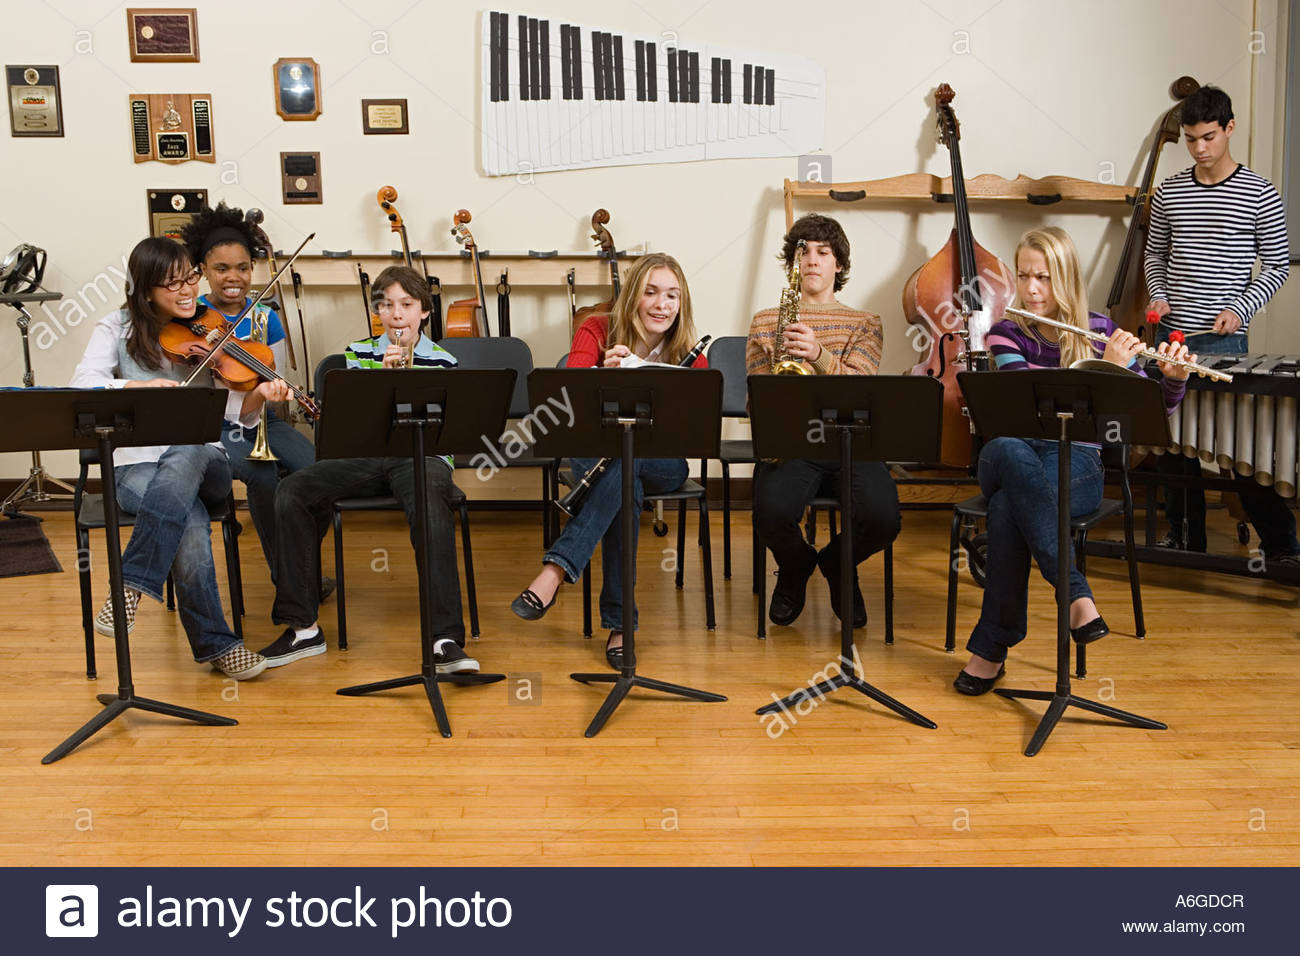 Band practice - Stock Image